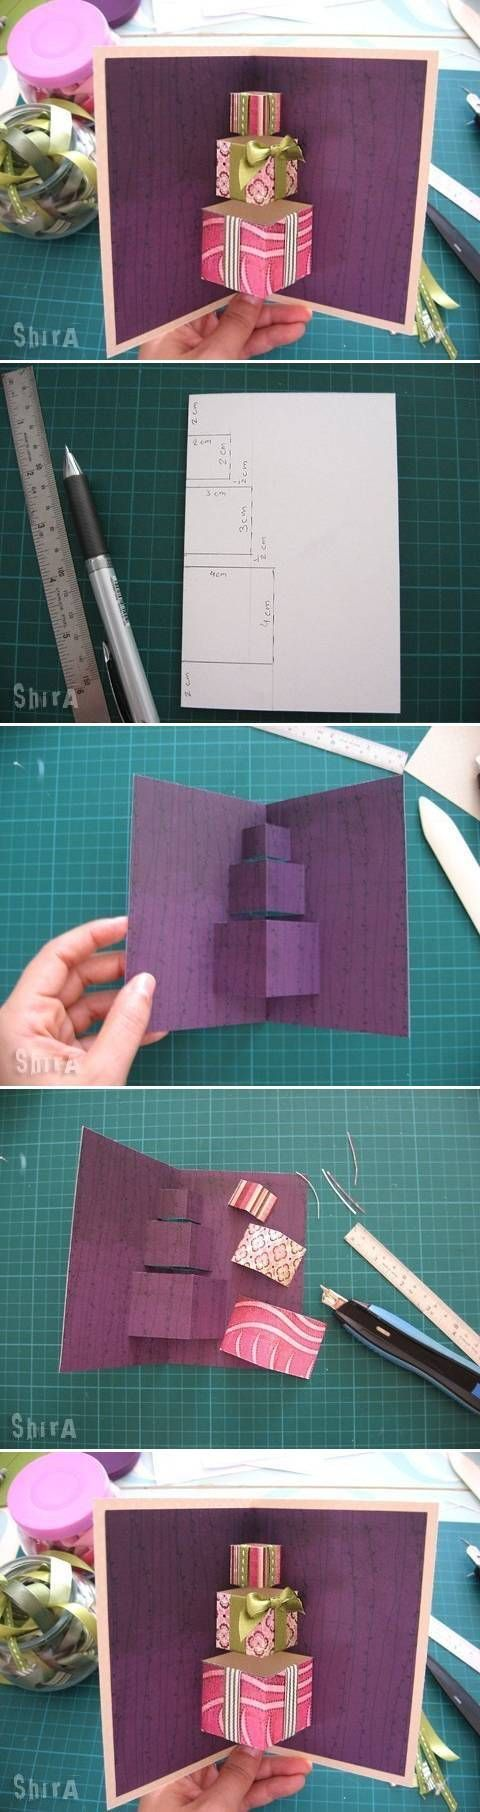 DIY Simple 3D Gift Card DIY Projects | UsefulDIY.com